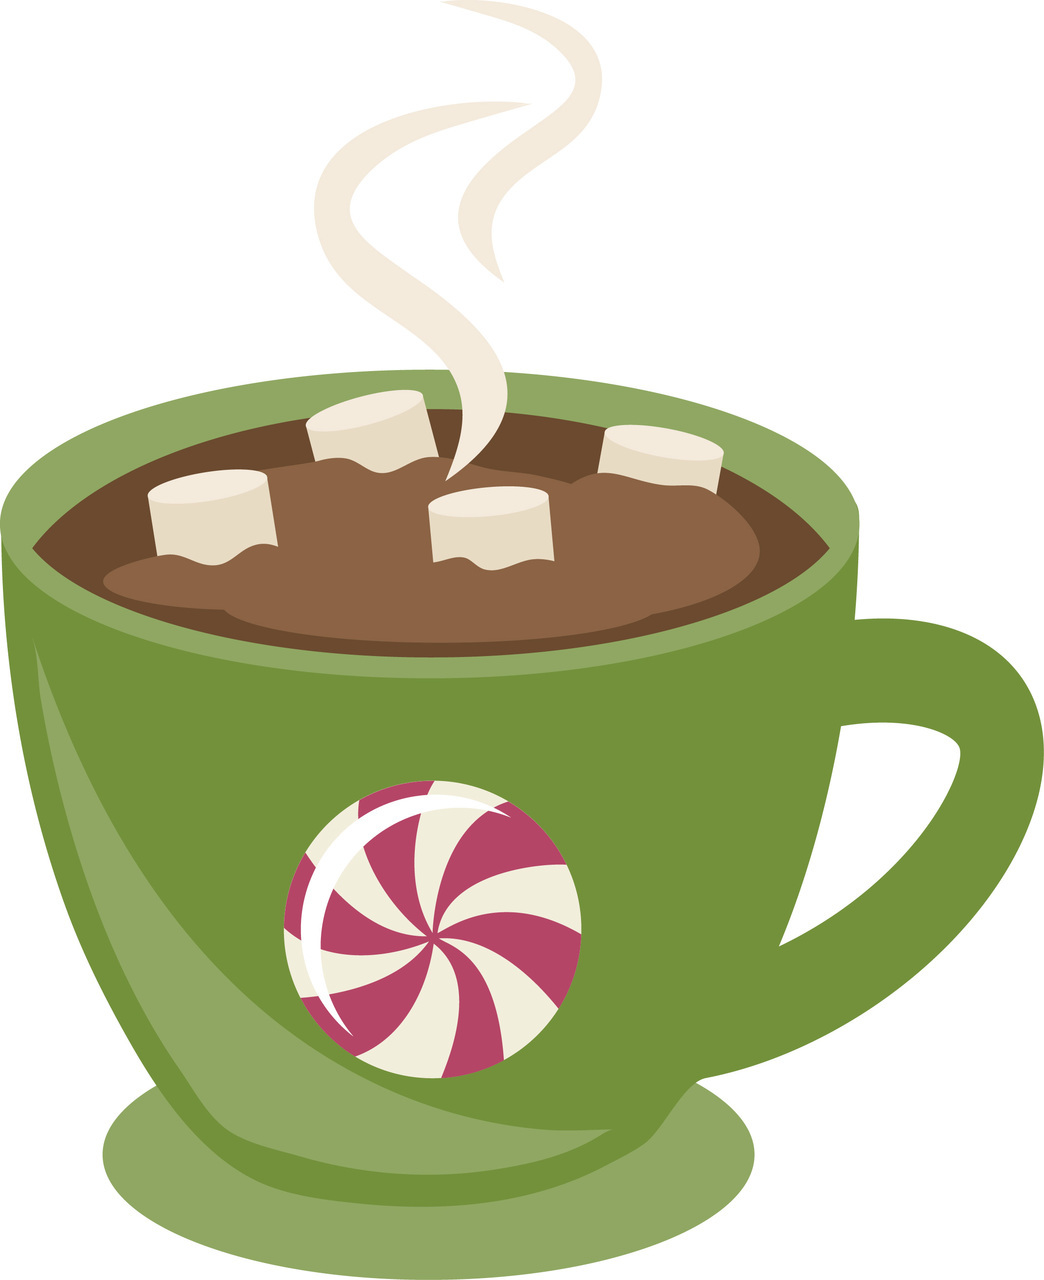 Red hot cocoa clipart hot cho